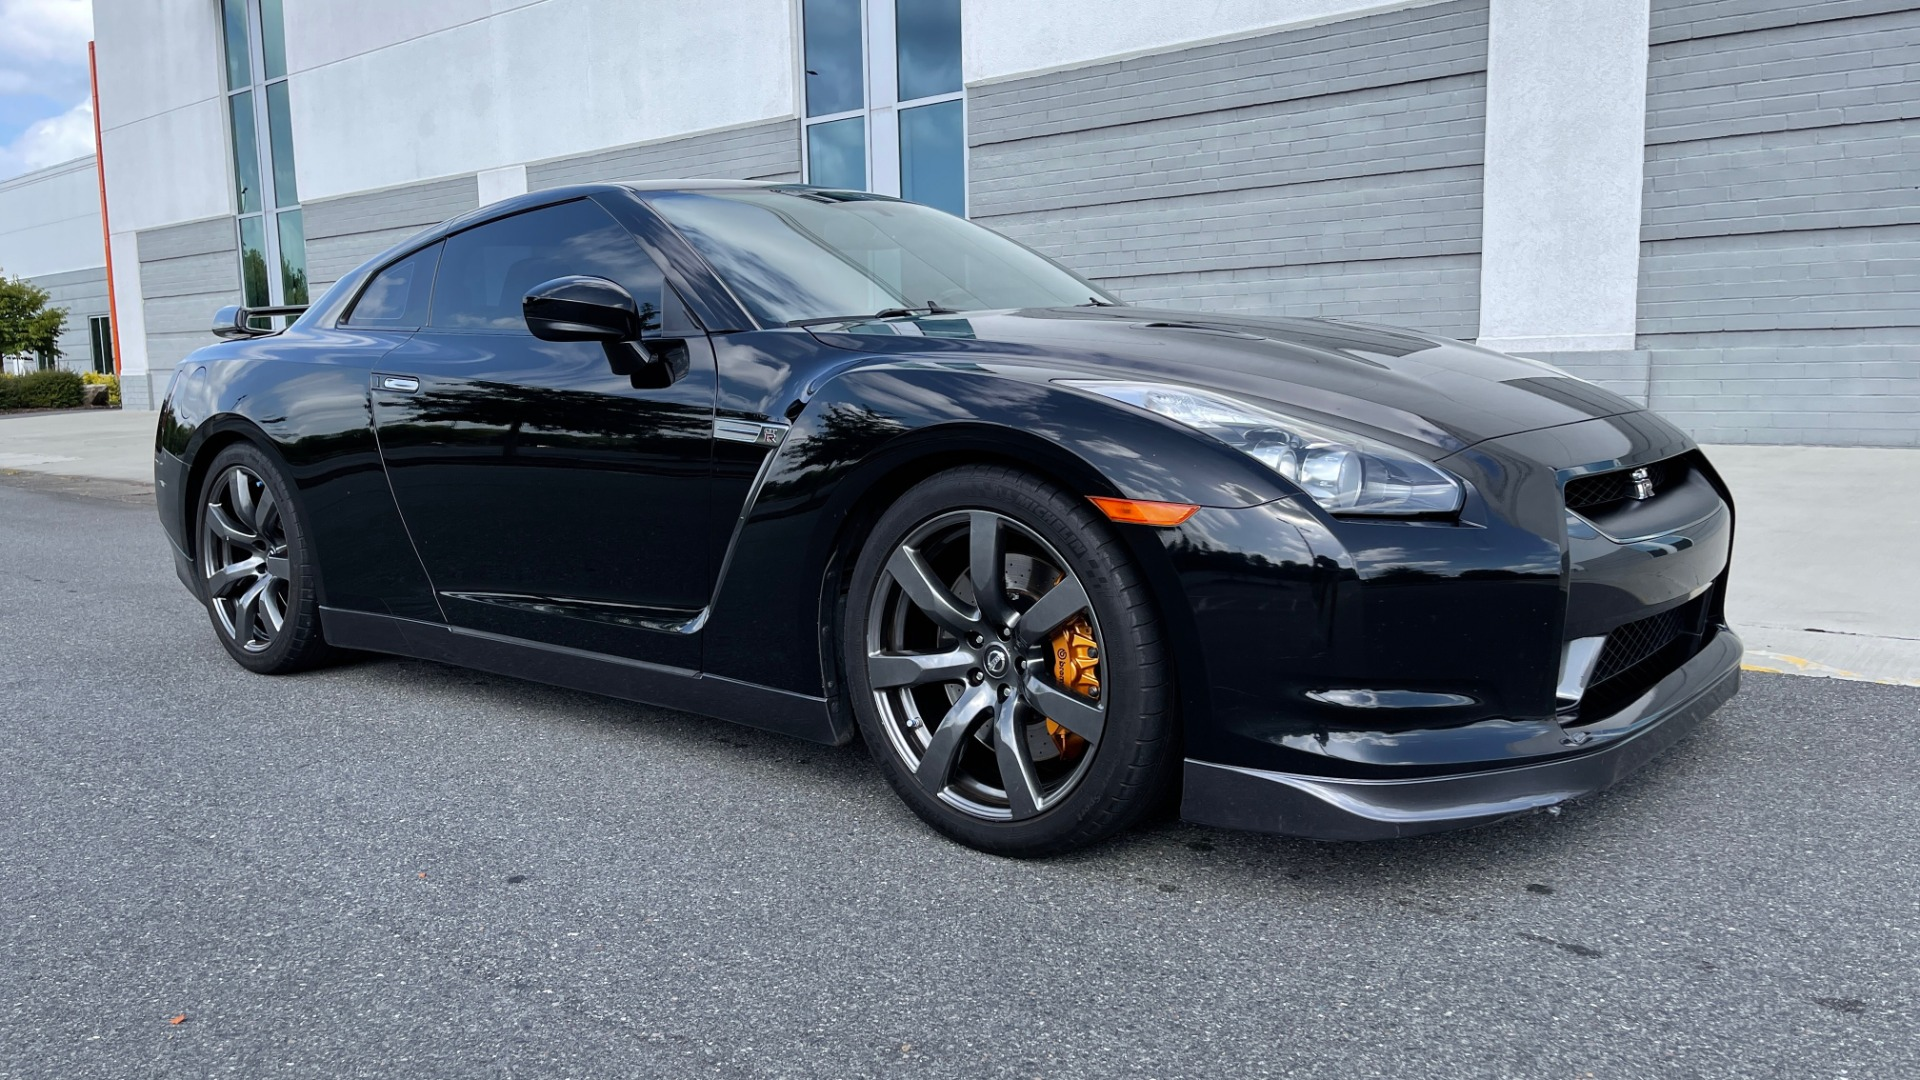 Used 2009 Nissan GT-R PREMIUM COUPE / AWD / TT 3.8L V6 / NAV / BOSE / BREMBO for sale $57,995 at Formula Imports in Charlotte NC 28227 5